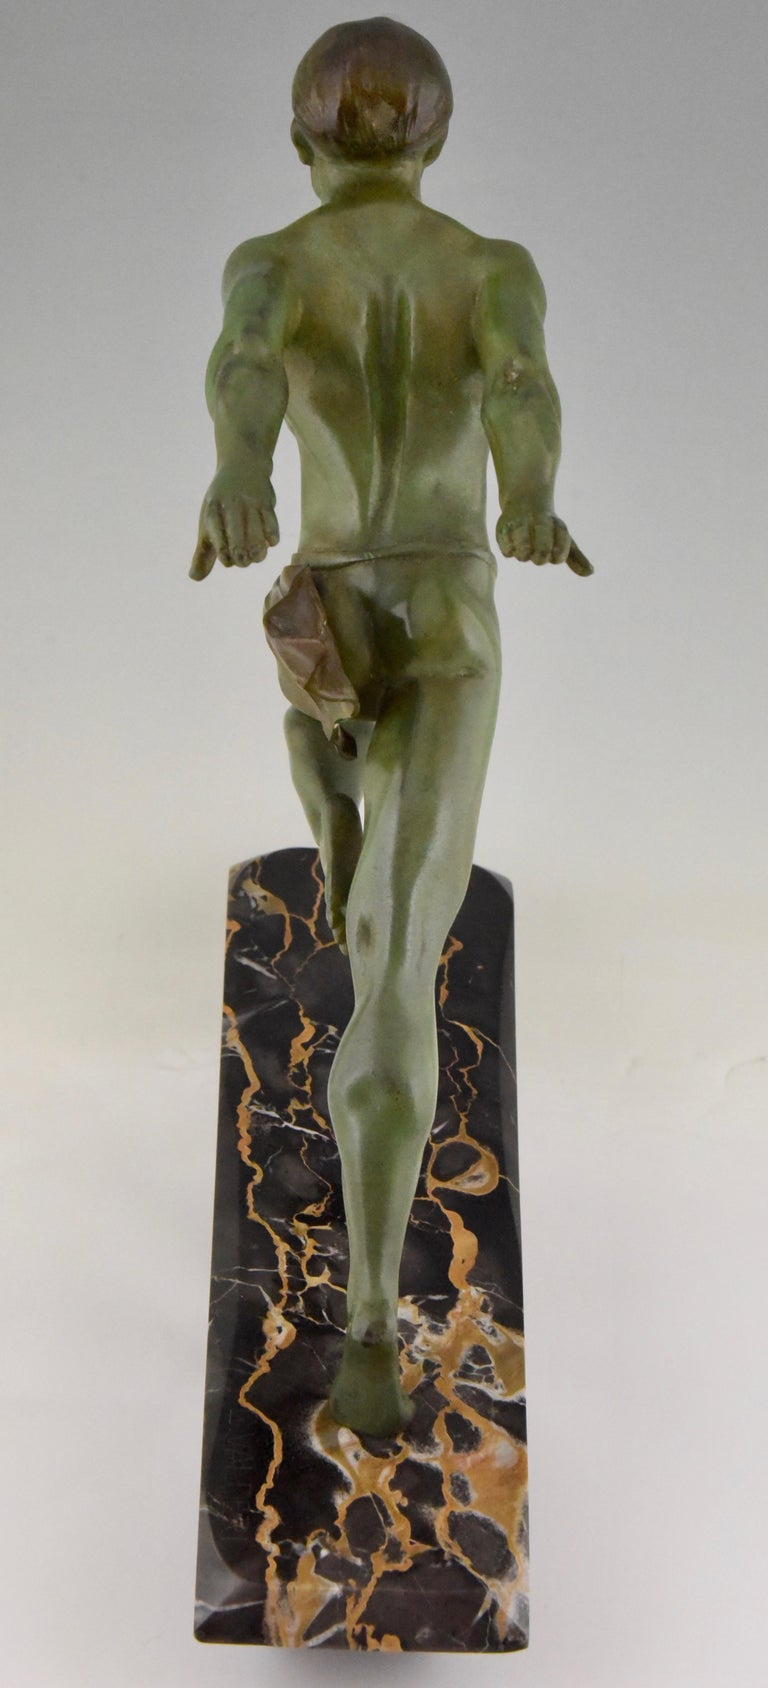 Art Deco Running Man Statue by L. Valderi French For Sale 4